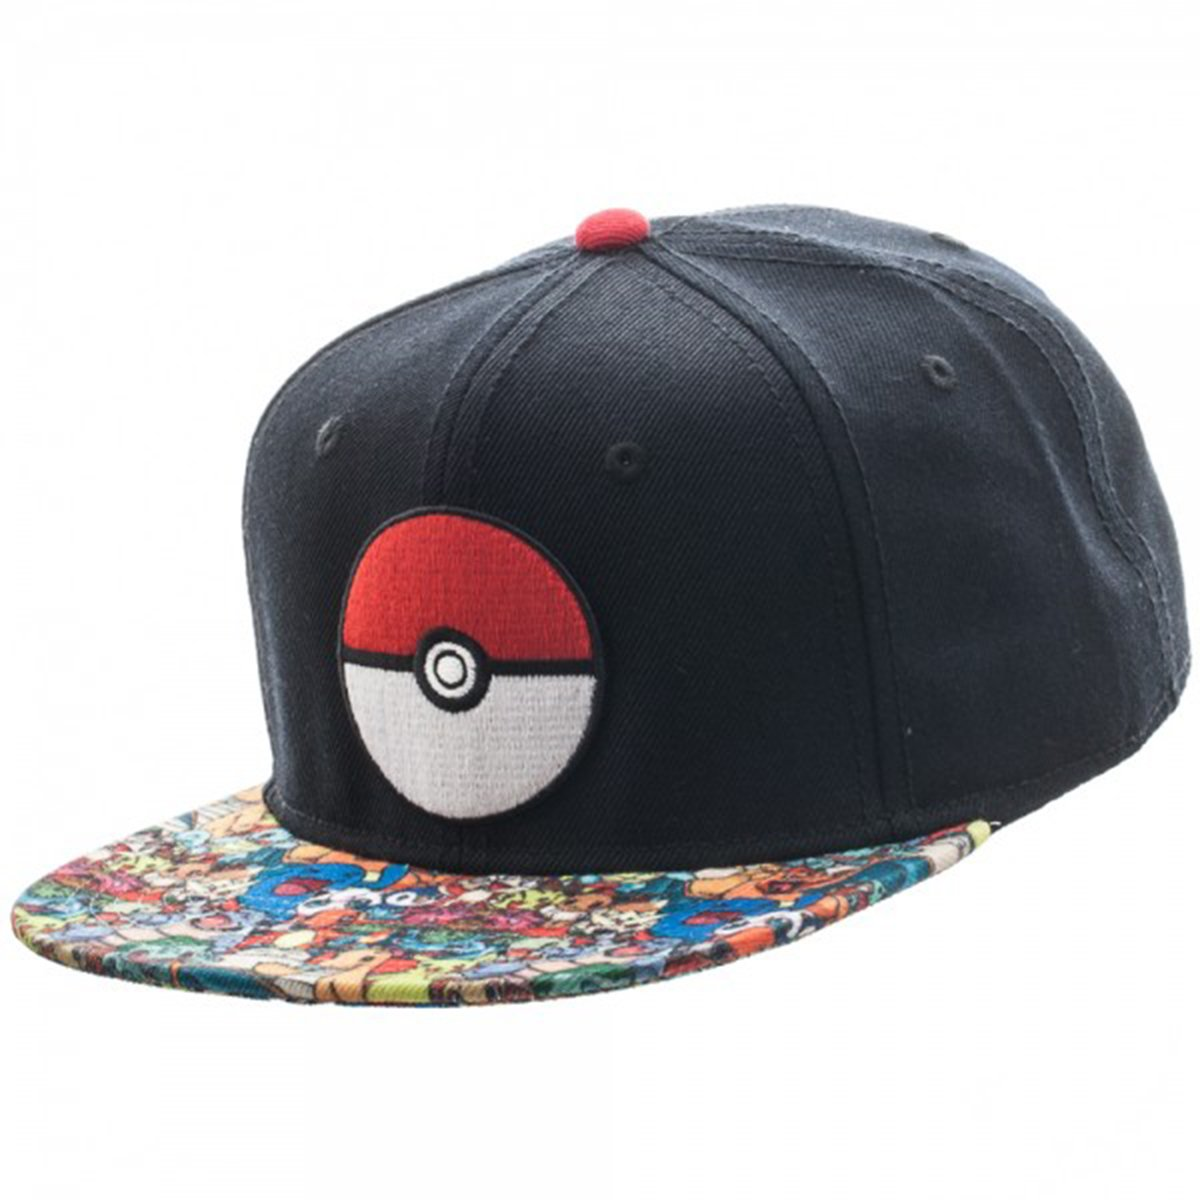 Pokemon Pokeball Sublimated Bill Snapback Hat BIOWORLD